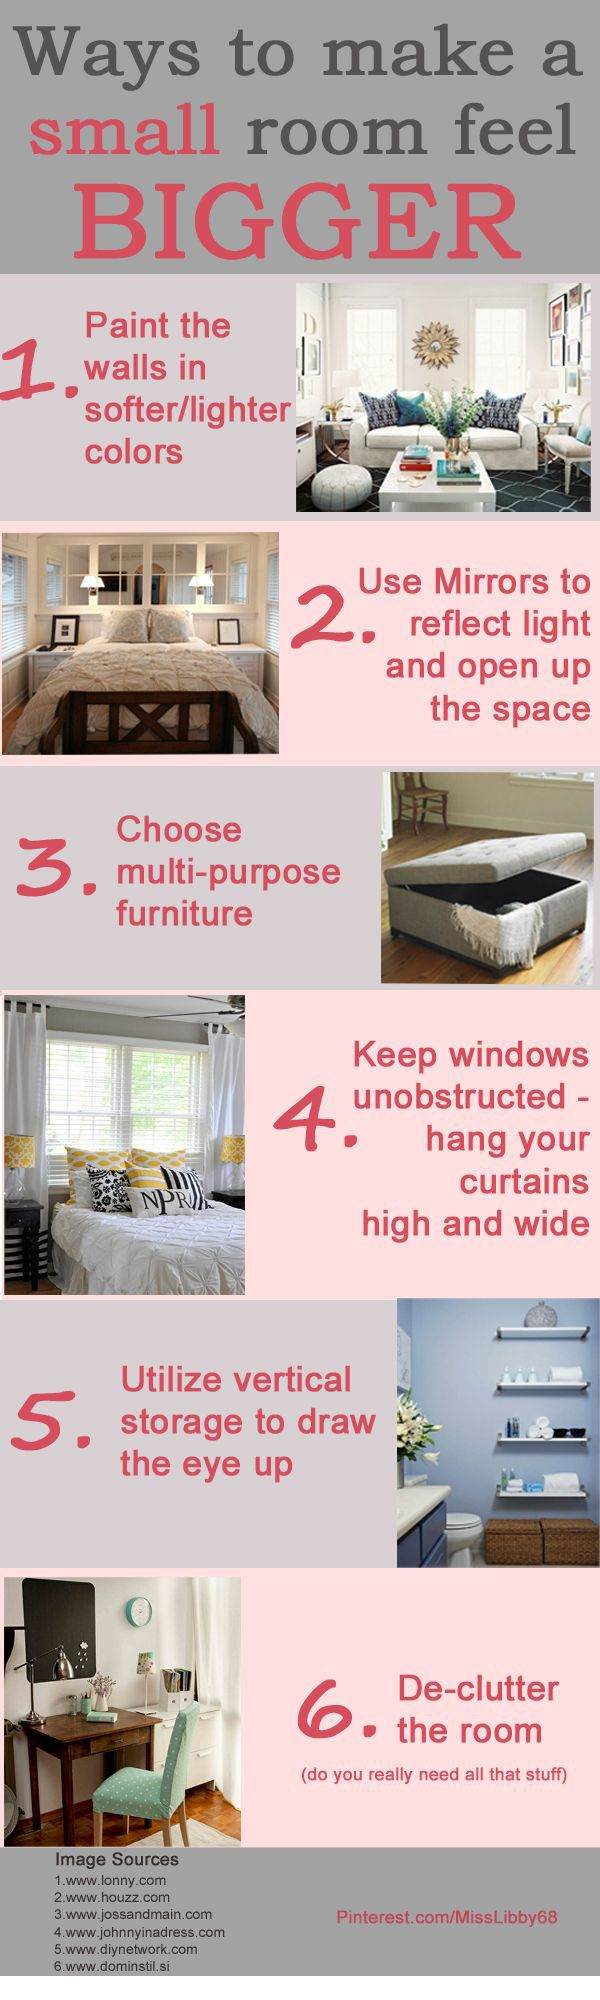 20 Bedroom Organization Tips To Make The Most Of A Small Space. 25  best ideas about Decorating Small Bedrooms on Pinterest